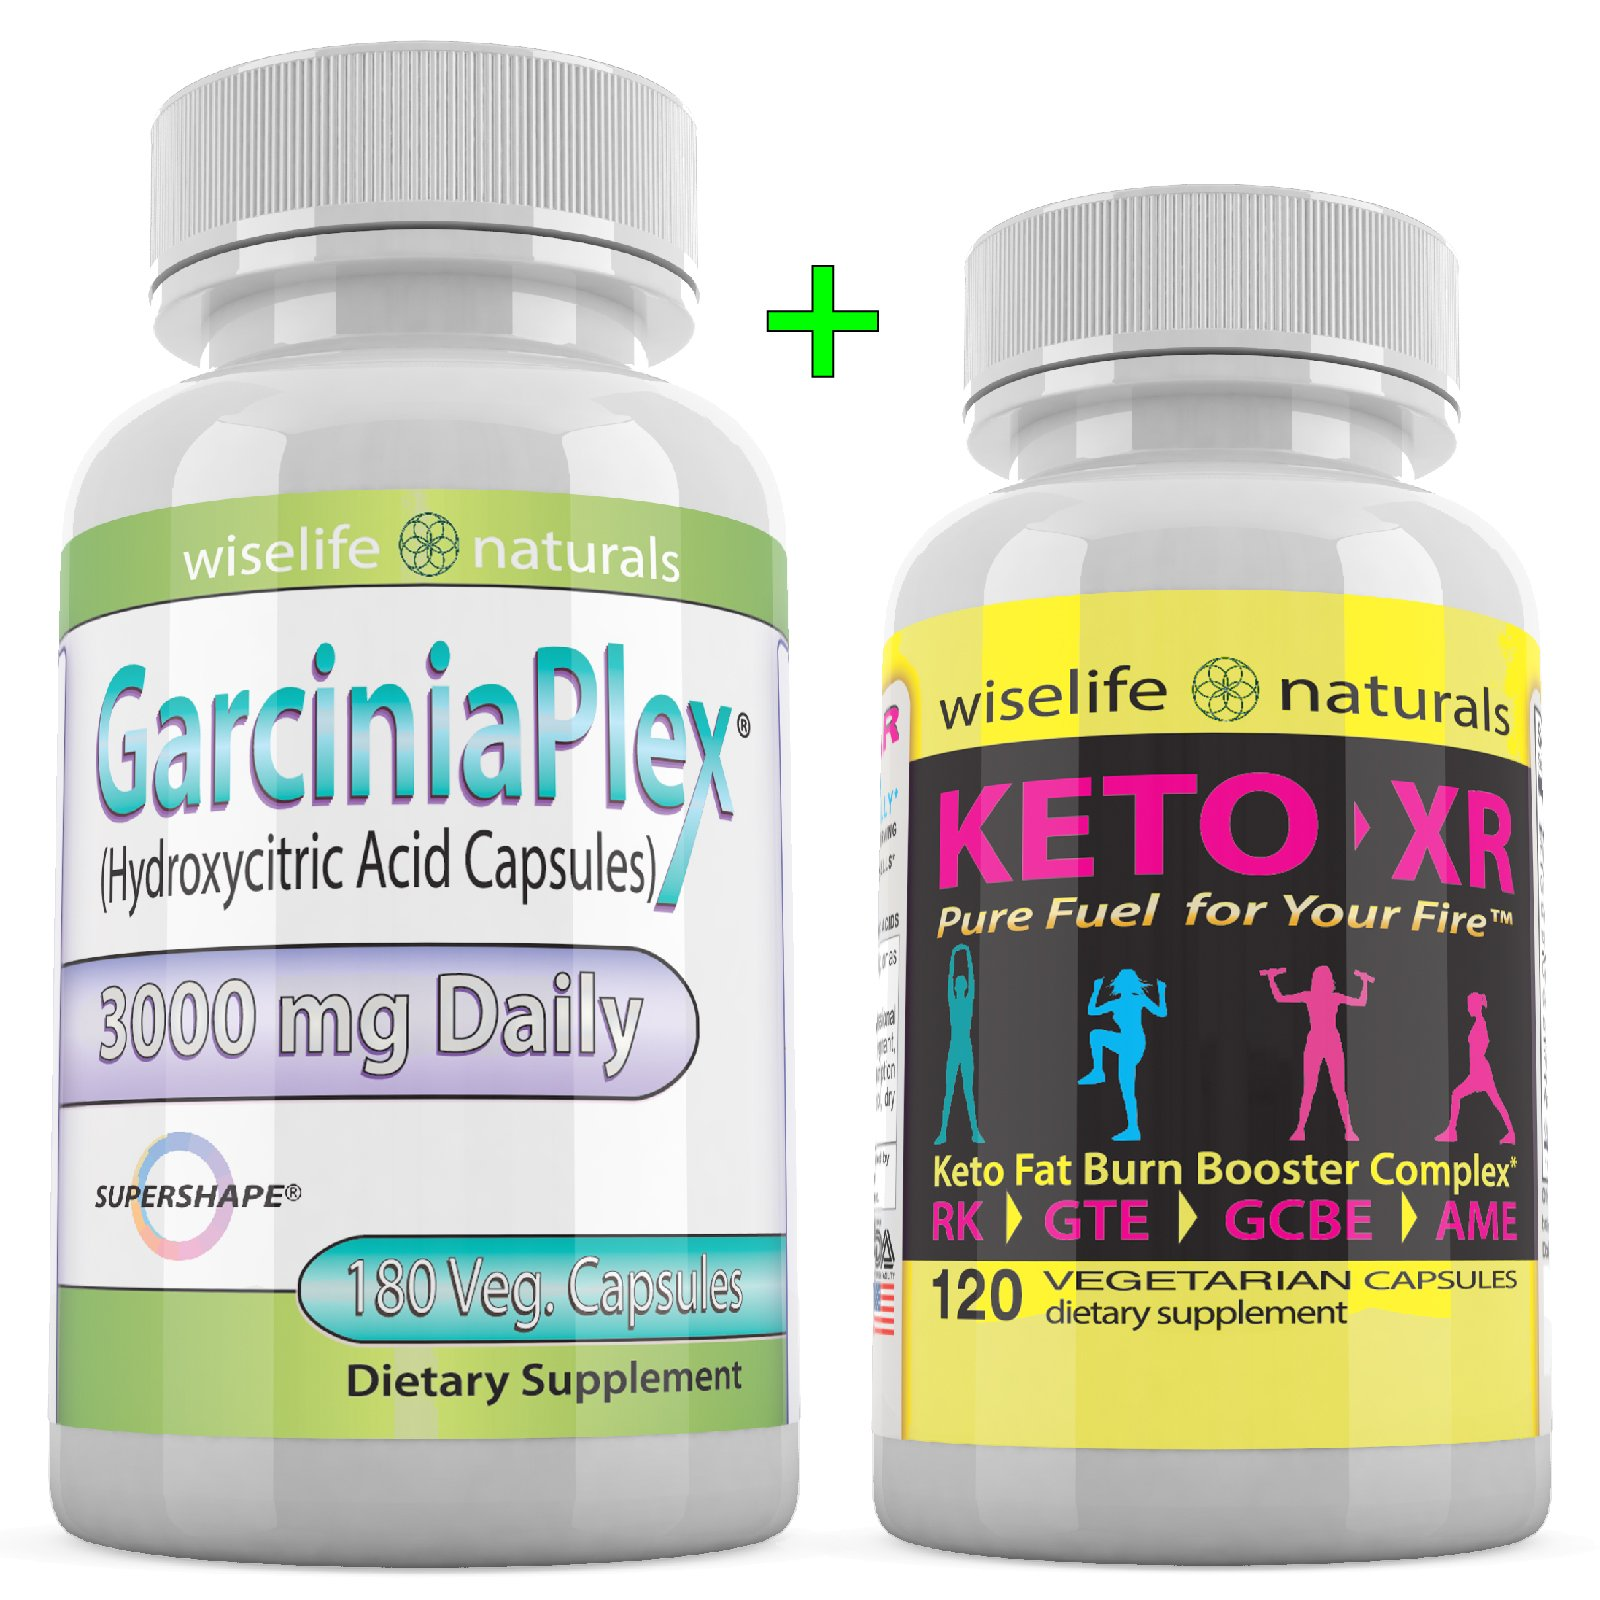 Strong Fast Acting Weight Loss Diet Kit That Works with Pure Garcinia Cambogia Extract 180 Ct 60% HCA 3000 mg, Pure Raspberry Ketones 60 Ct, Max Strength Boost Metabolism Lose Belly Fat Blocker Pills